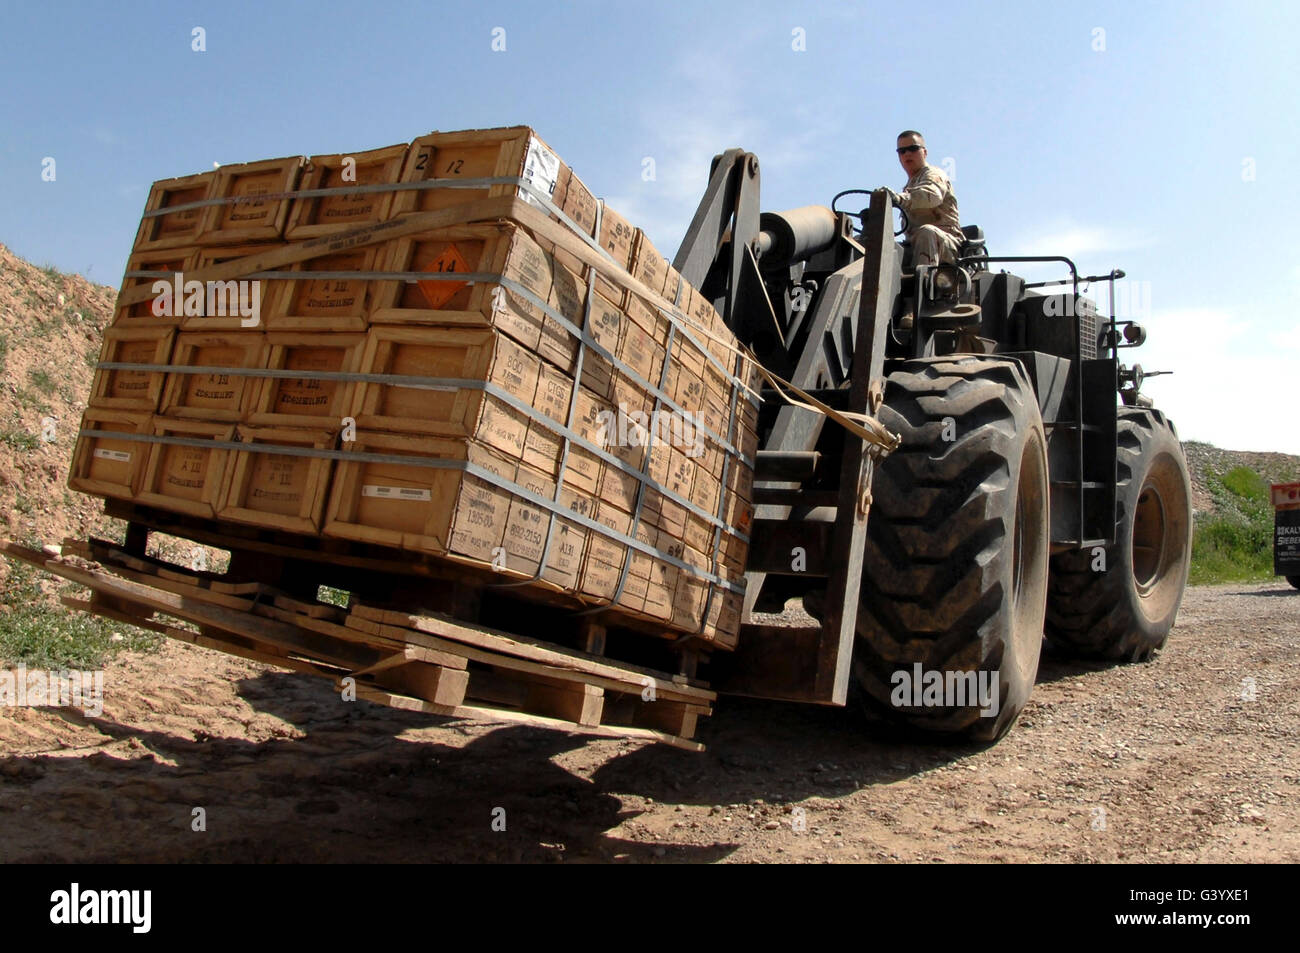 Airman loads a pallet of ammunition onto a truck for delivery. - Stock Image